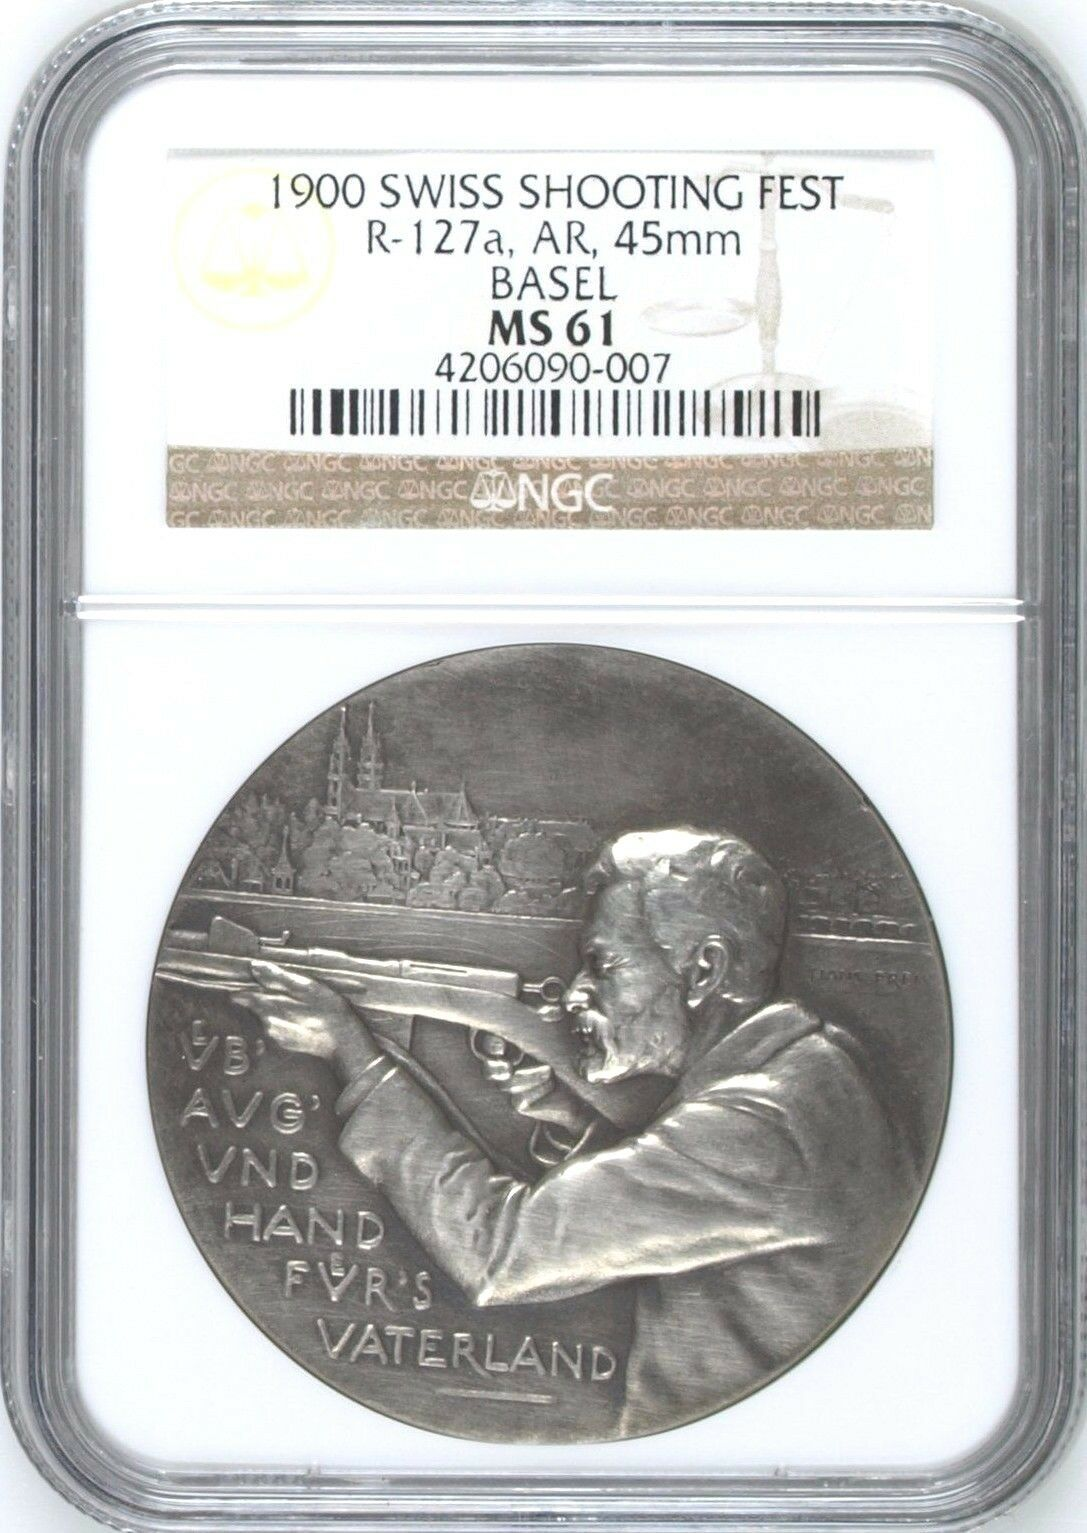 Swiss 1900 Silver Medal Shooting Fest Basel R-127a M-78 NGC MS61 Mintage-650